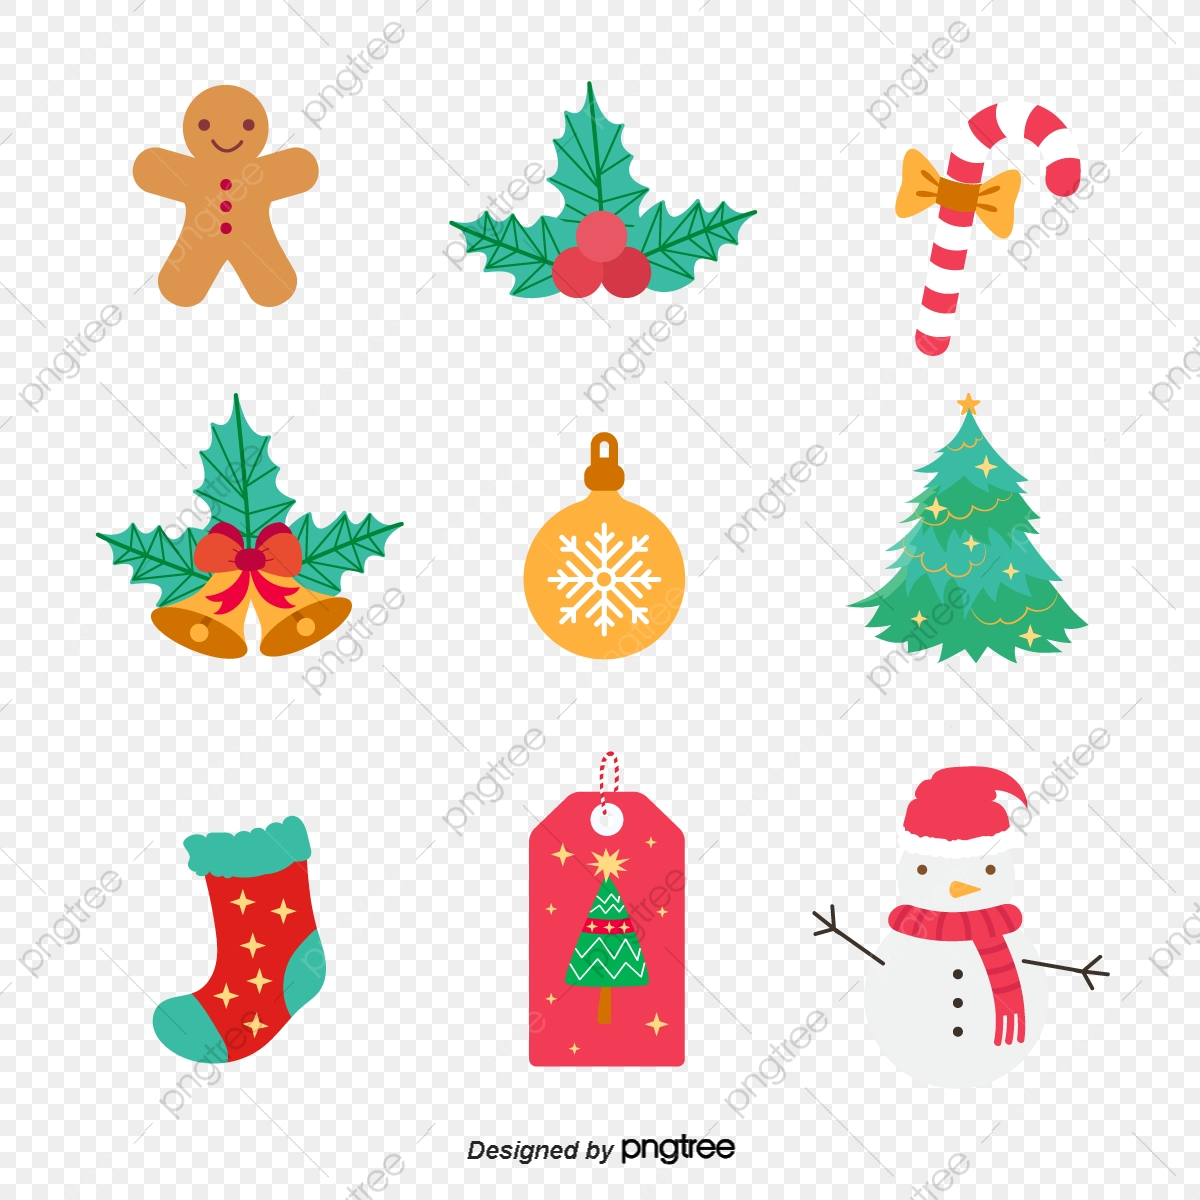 Christmas Icons Png.Christmas Icon Creative Christmas Icon Snowman Png